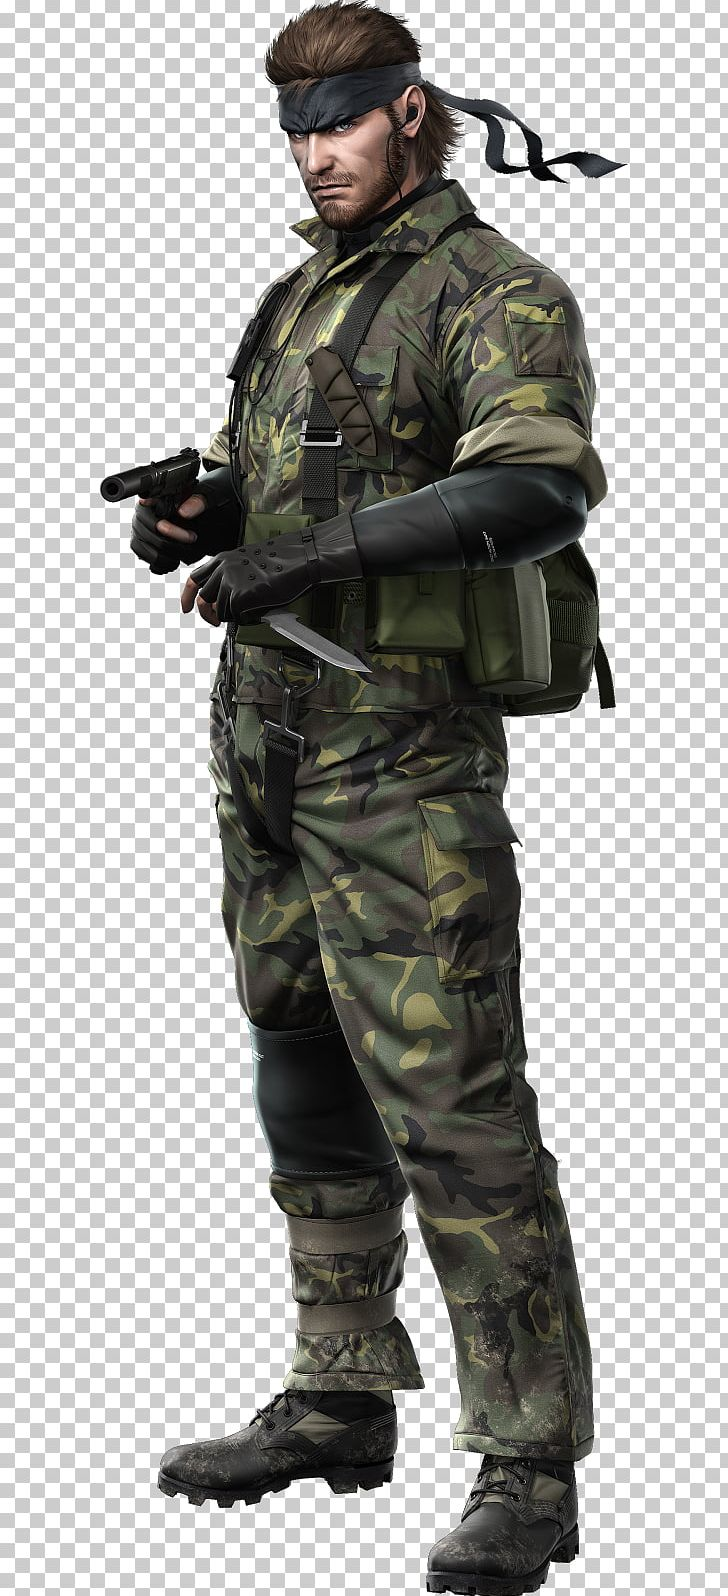 Metal gear solid 3 clipart picture free library Metal Gear Solid 3: Snake Eater Metal Gear 2: Solid Snake ... picture free library